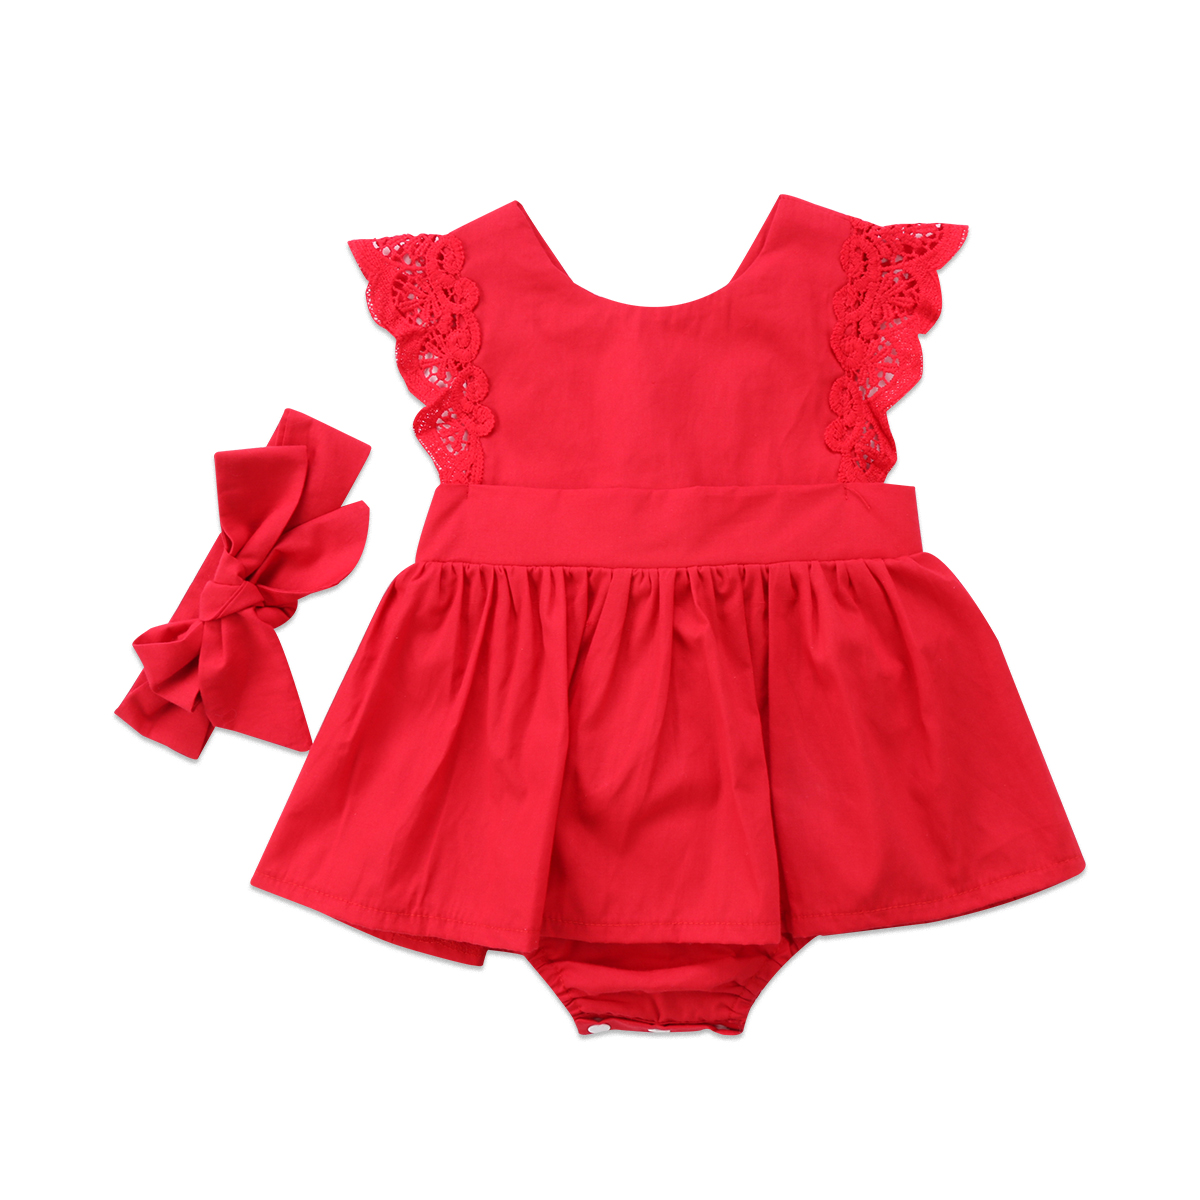 2018 Baby Christmas Red Bodysuit Dress Toddler Kids Baby Girl Lace Princess Dresses Flower Clothes lace flounce trim bardot bodysuit